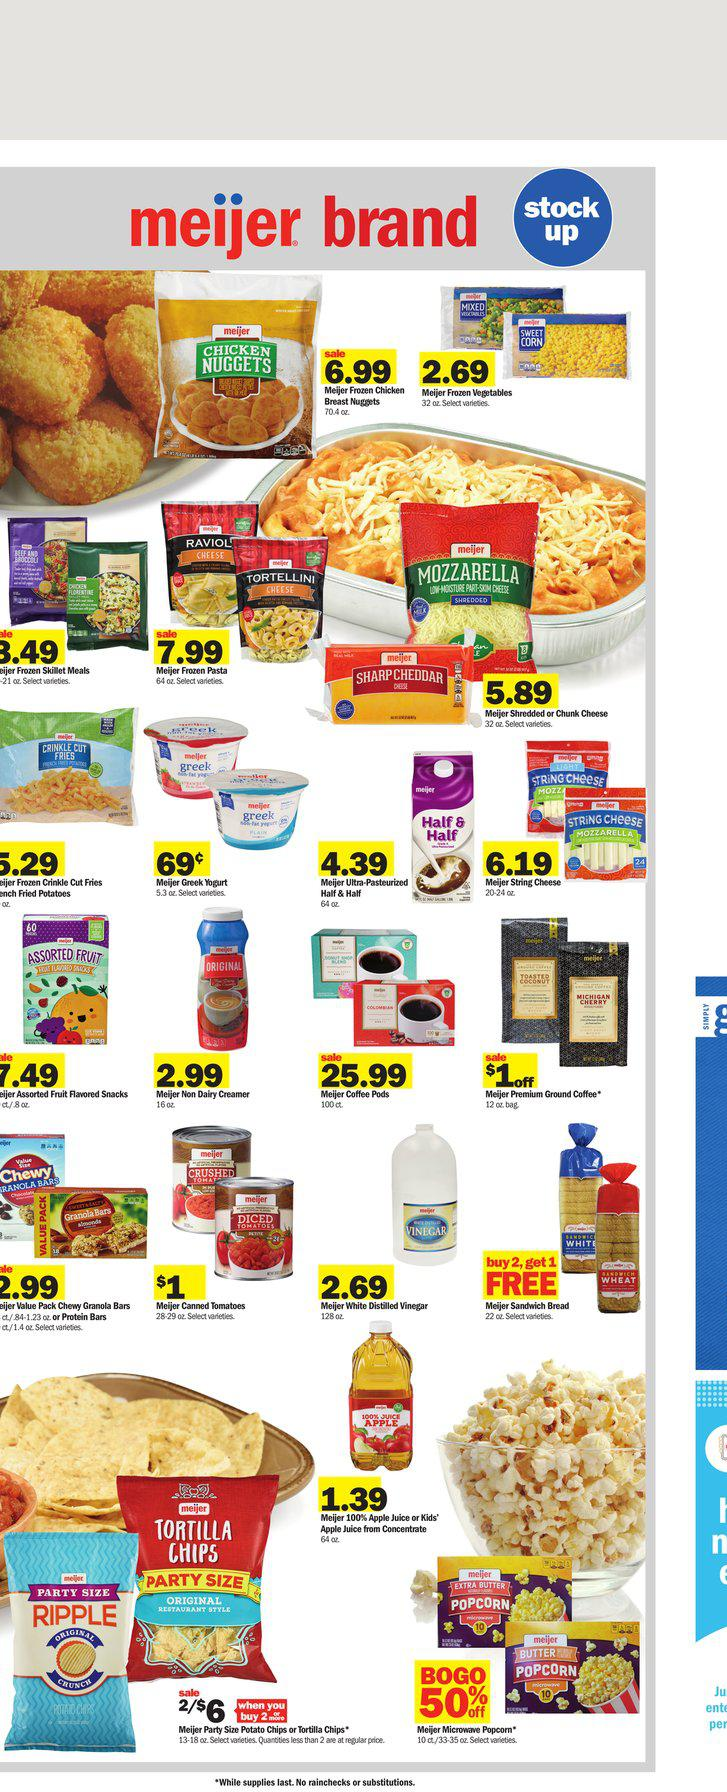 01.08.2021 Meijer ad 10. page